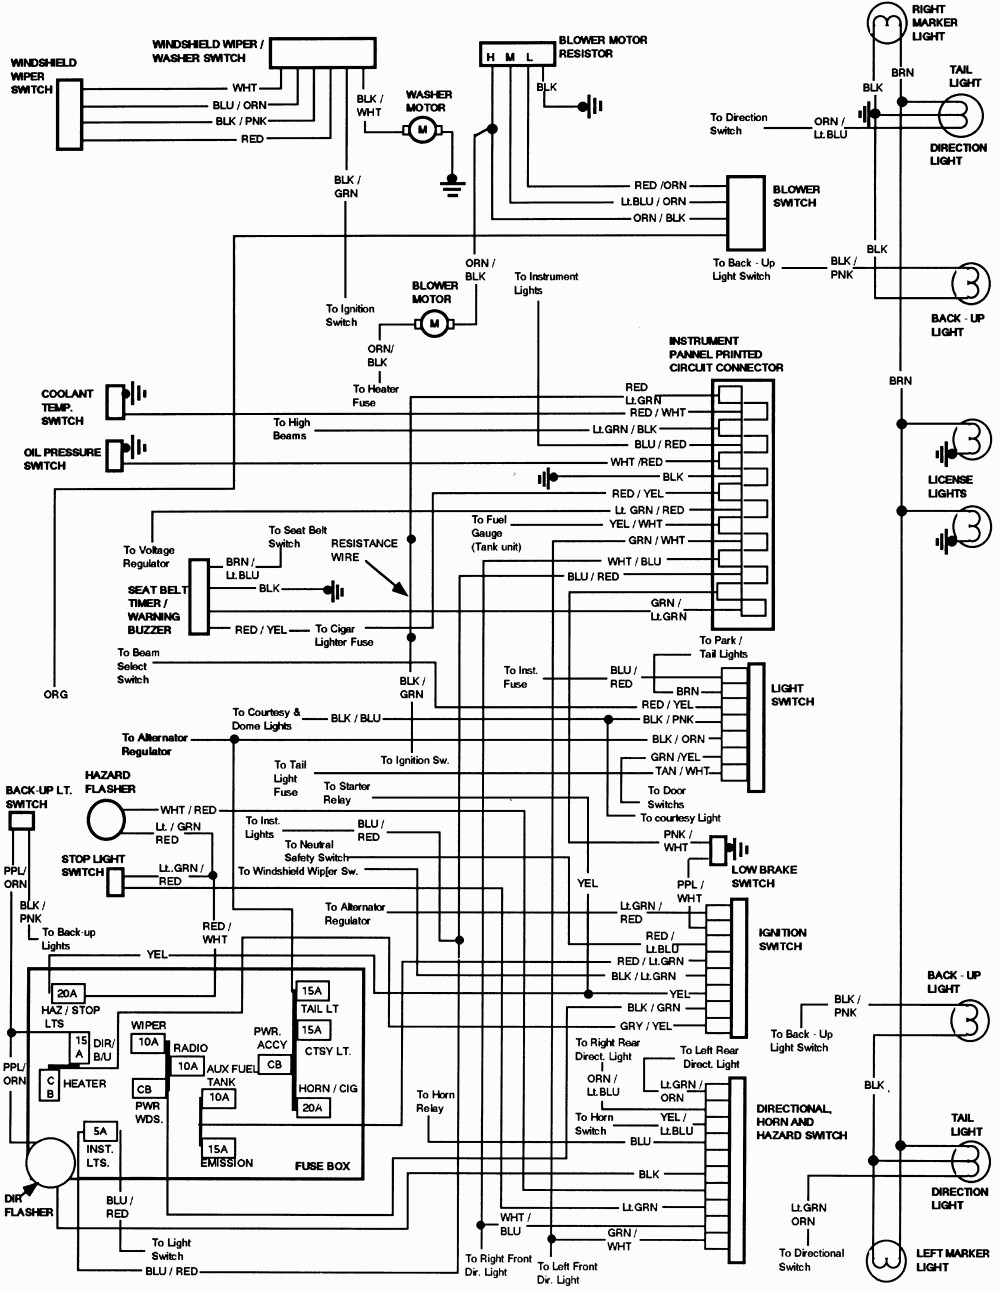 medium resolution of 1984 ford f 150 wiring diagrams wiring diagram datasource 1984 ford f150 radio wire diagram 1984 ford f150 wiring diagram